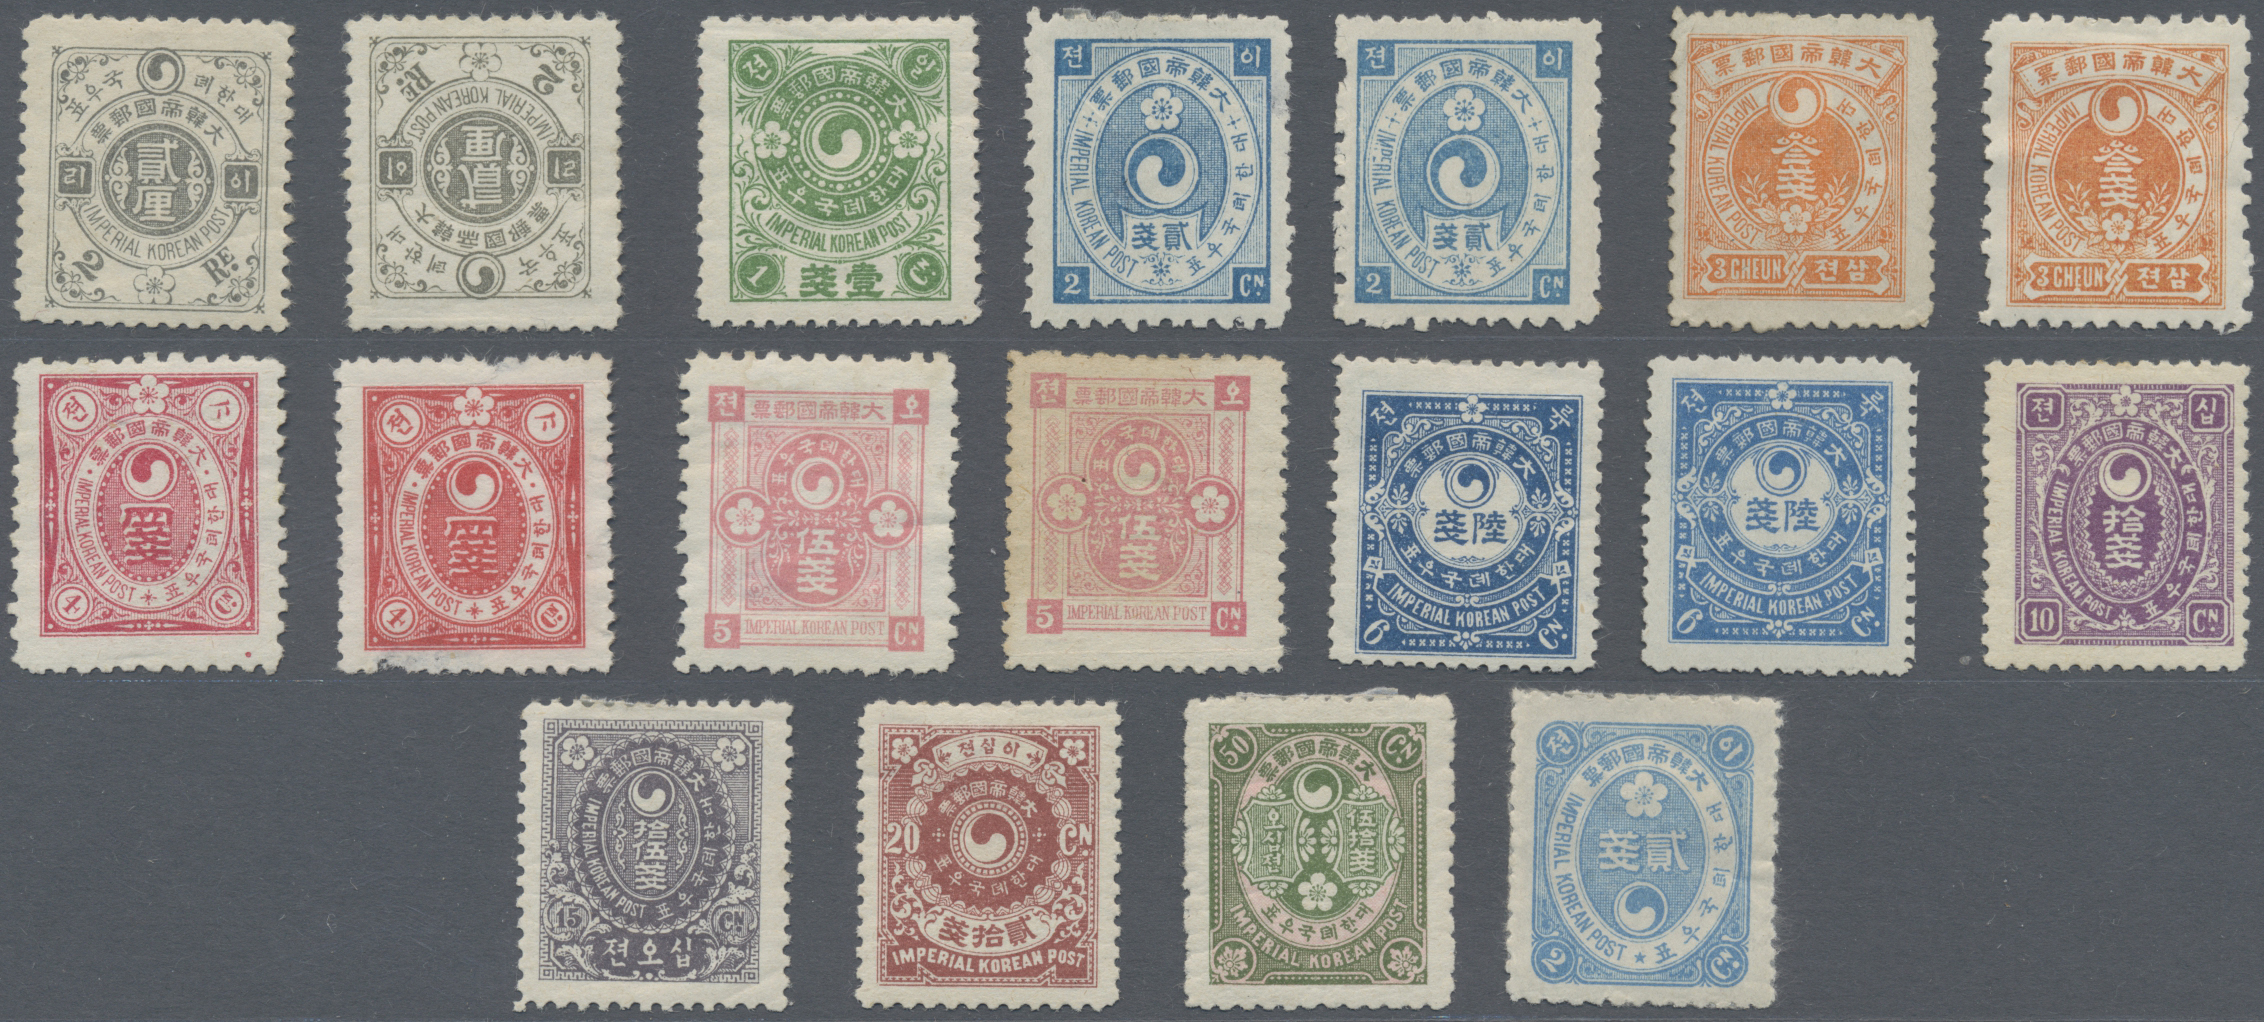 Lot 13844 - korea  -  Auktionshaus Christoph Gärtner GmbH & Co. KG Sale #48 collections Overseas  Airmail / Ship mail & Thematics